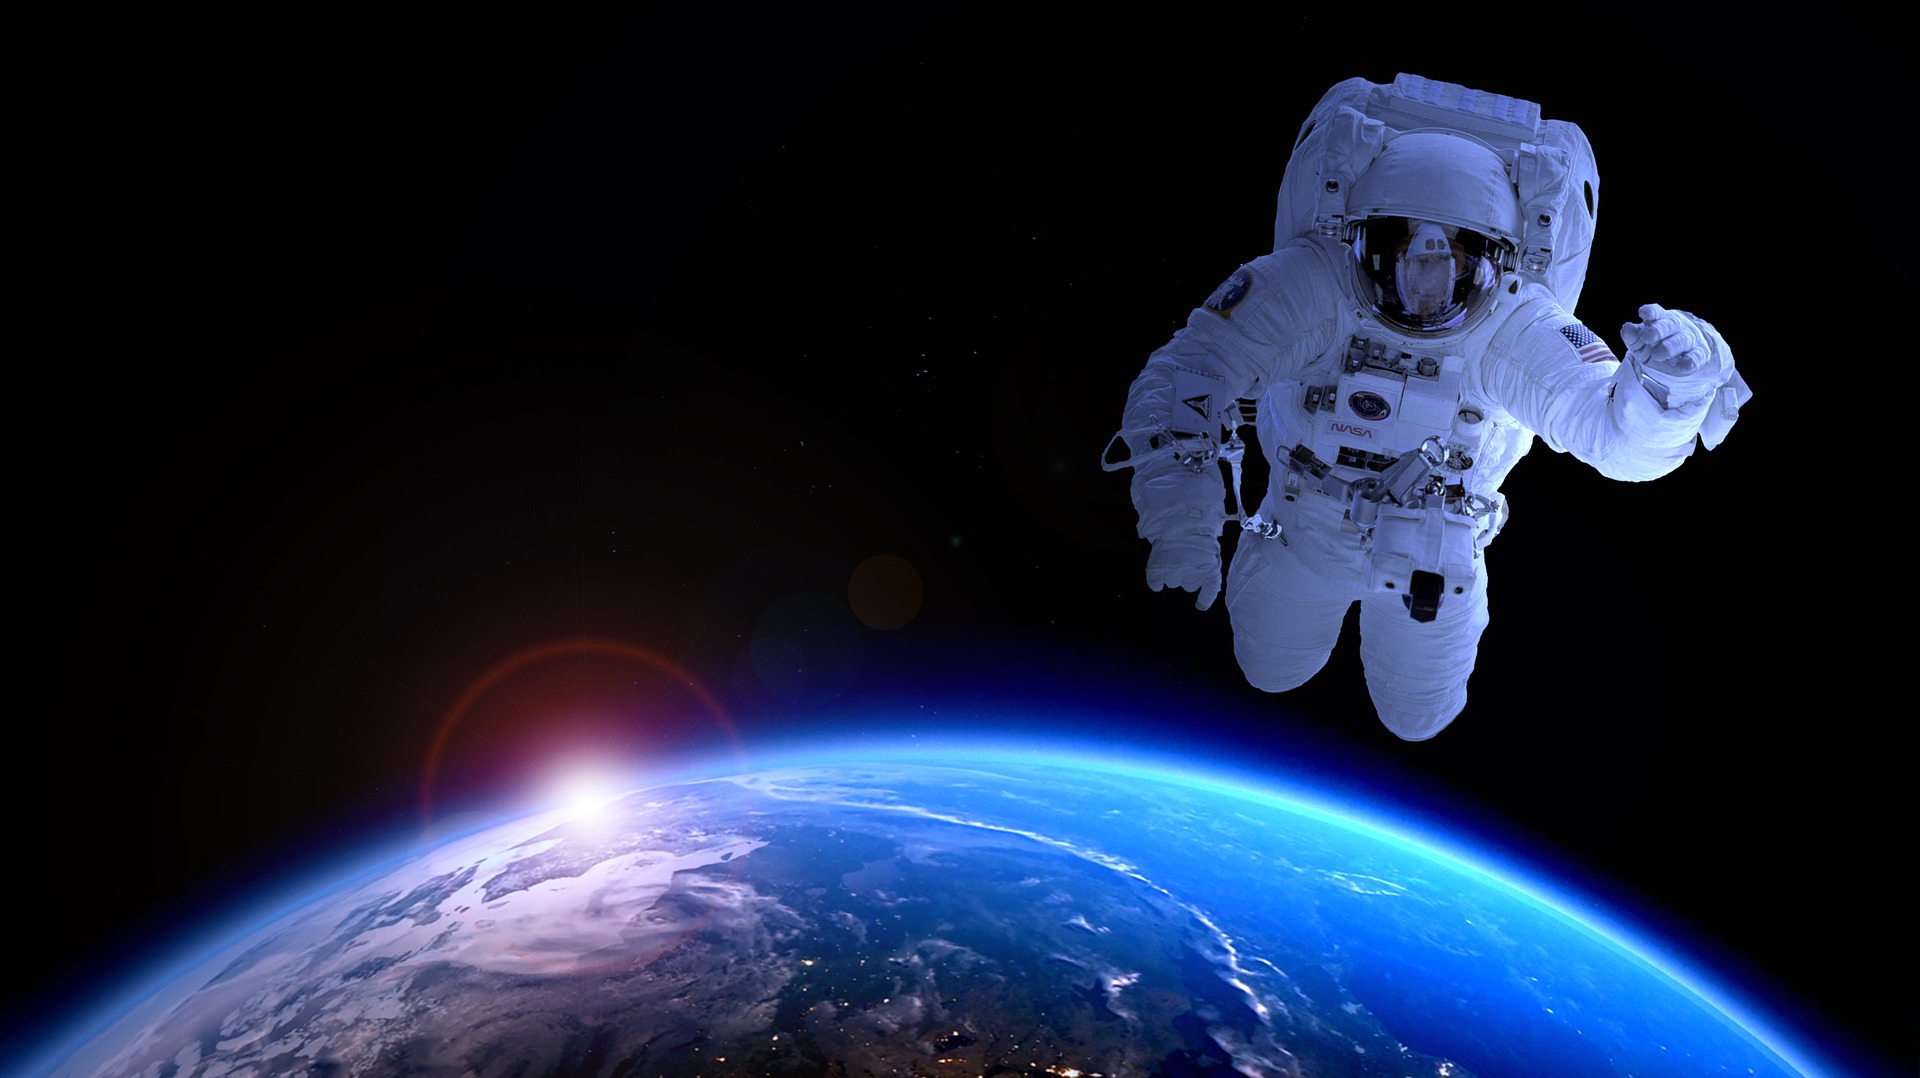 HUMAN IN SPACE